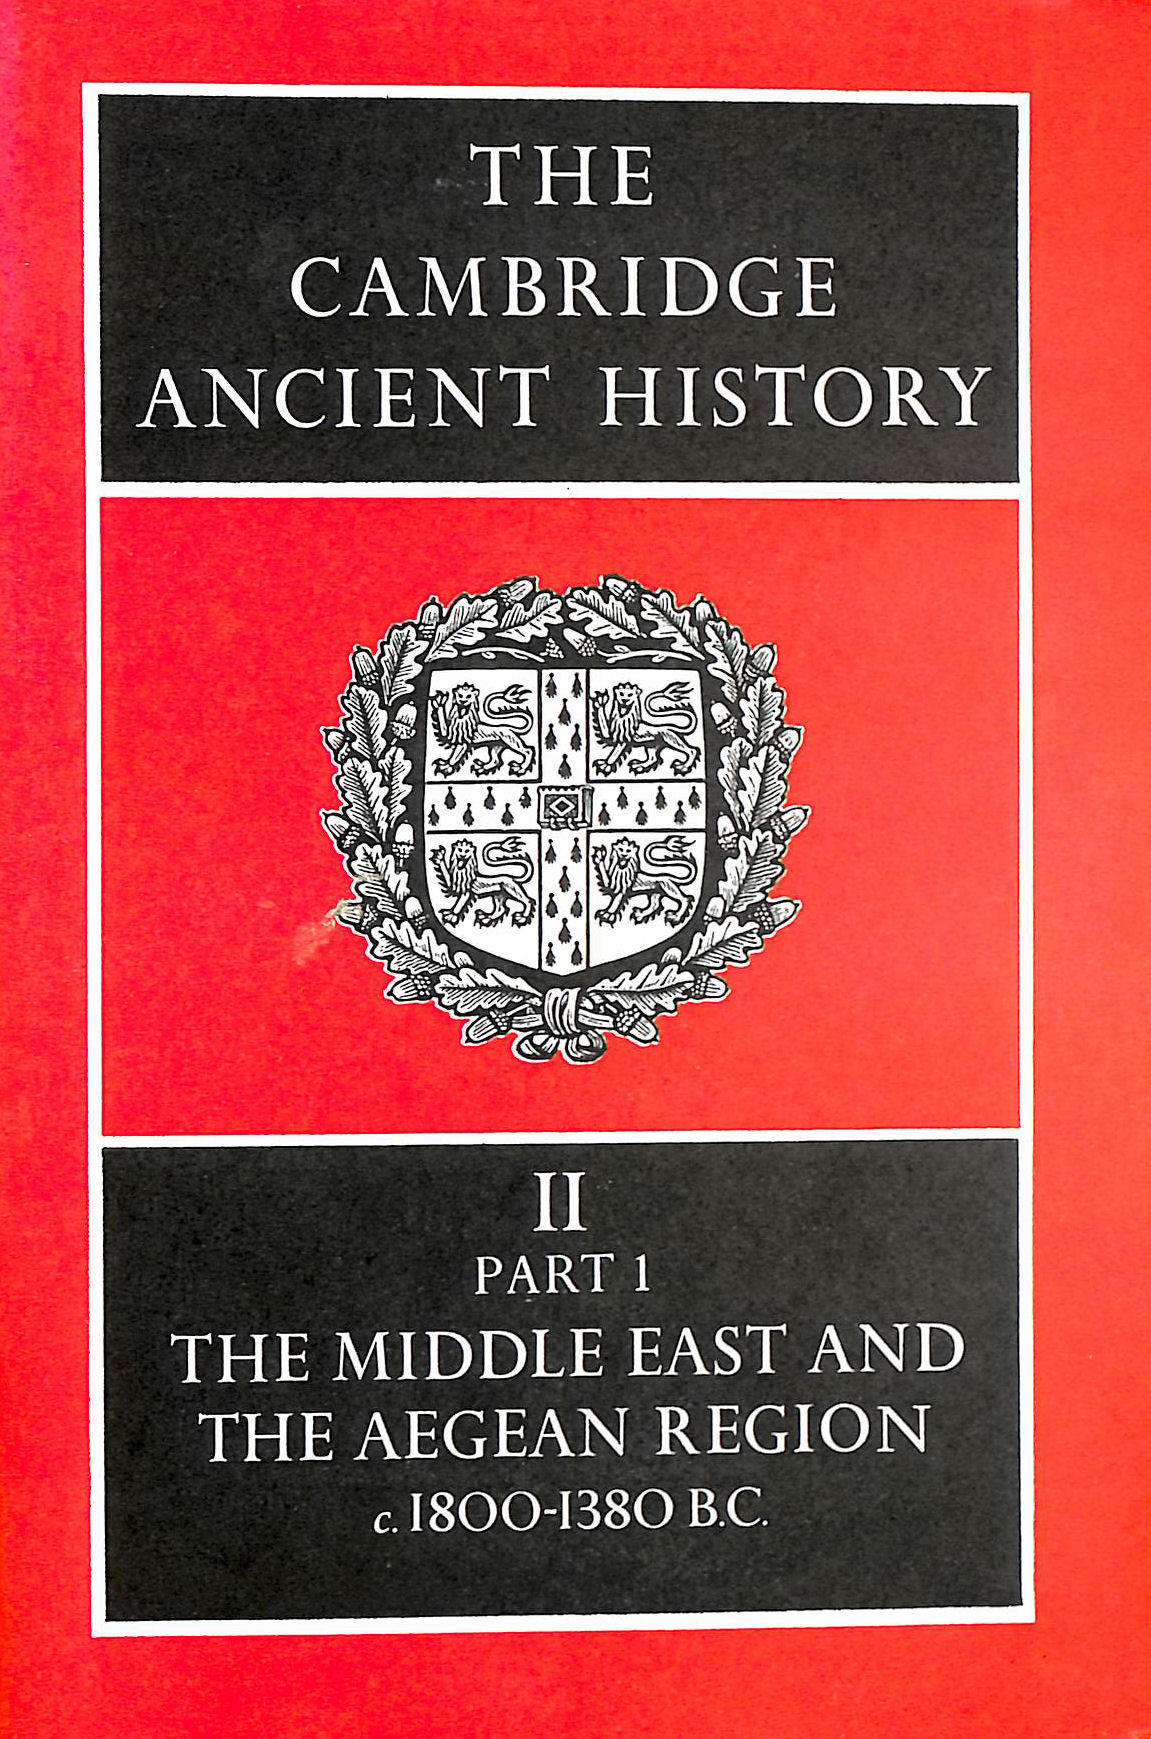 Image for The Cambridge Ancient History II Part 1 The Middle East and The Aegean Region c. 1800-1380 BC